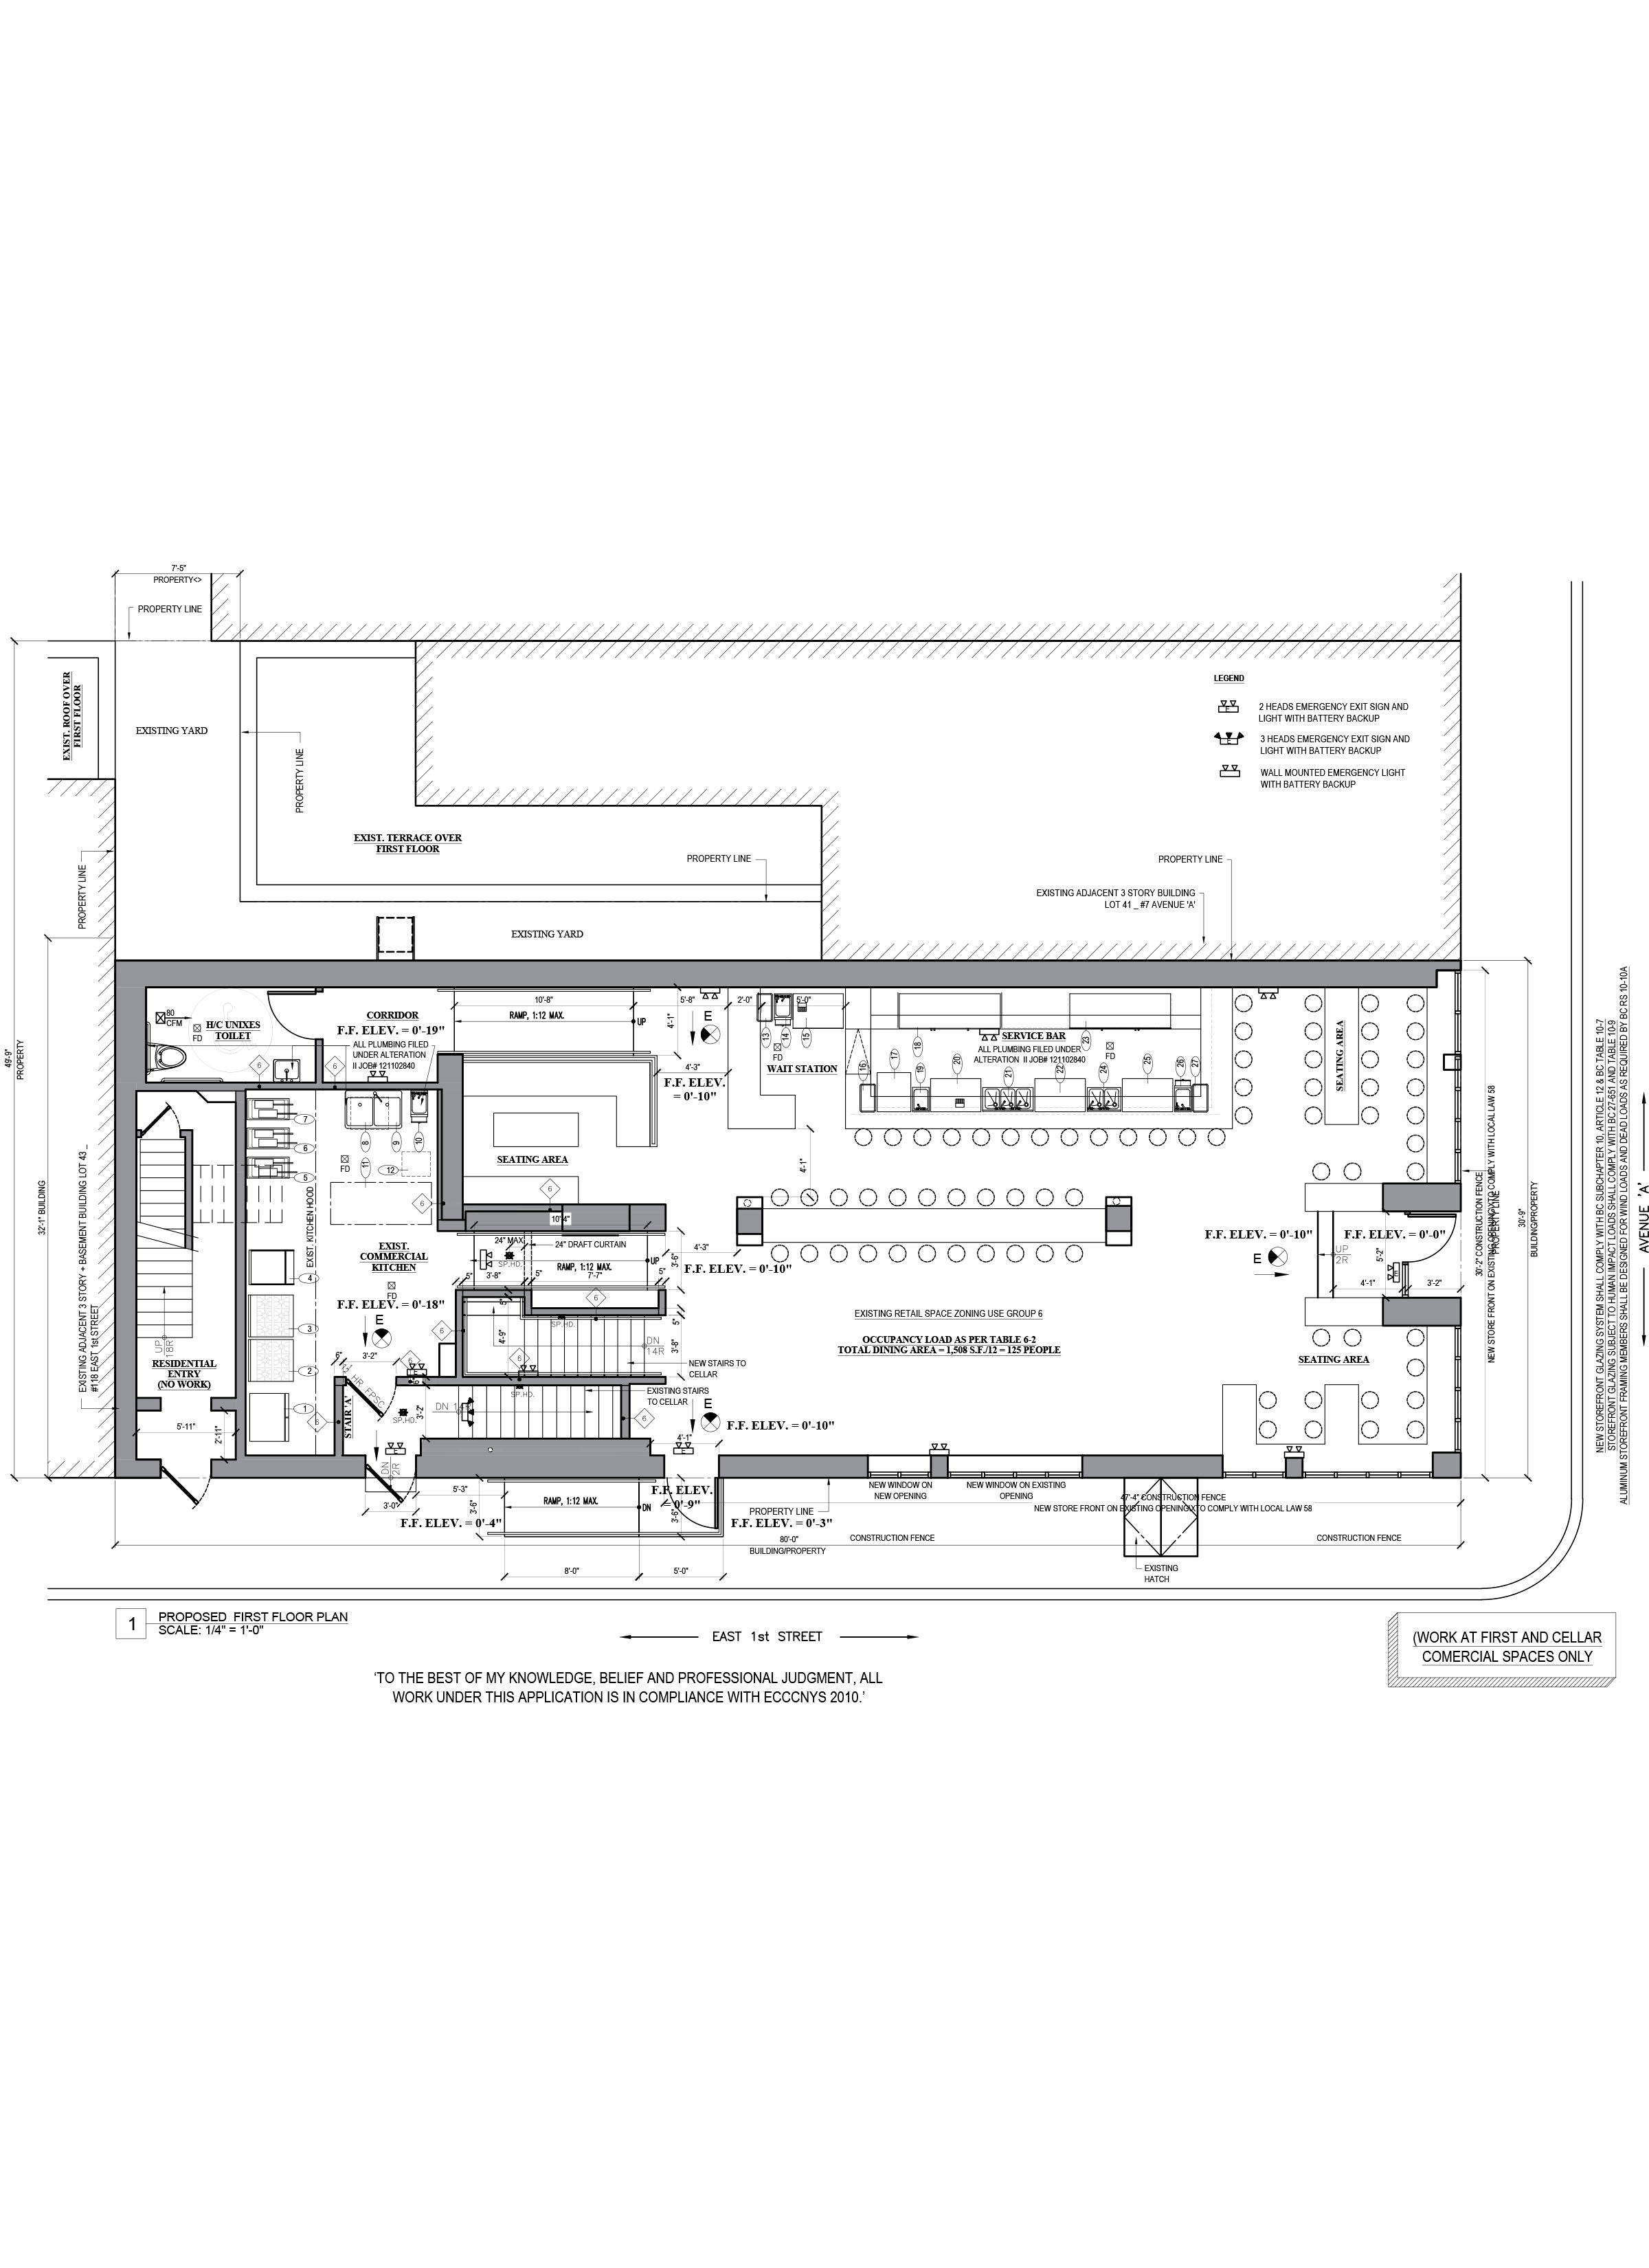 AutoCAD drafting_Restaurant floor plan design_Boulton&Watt_NYC